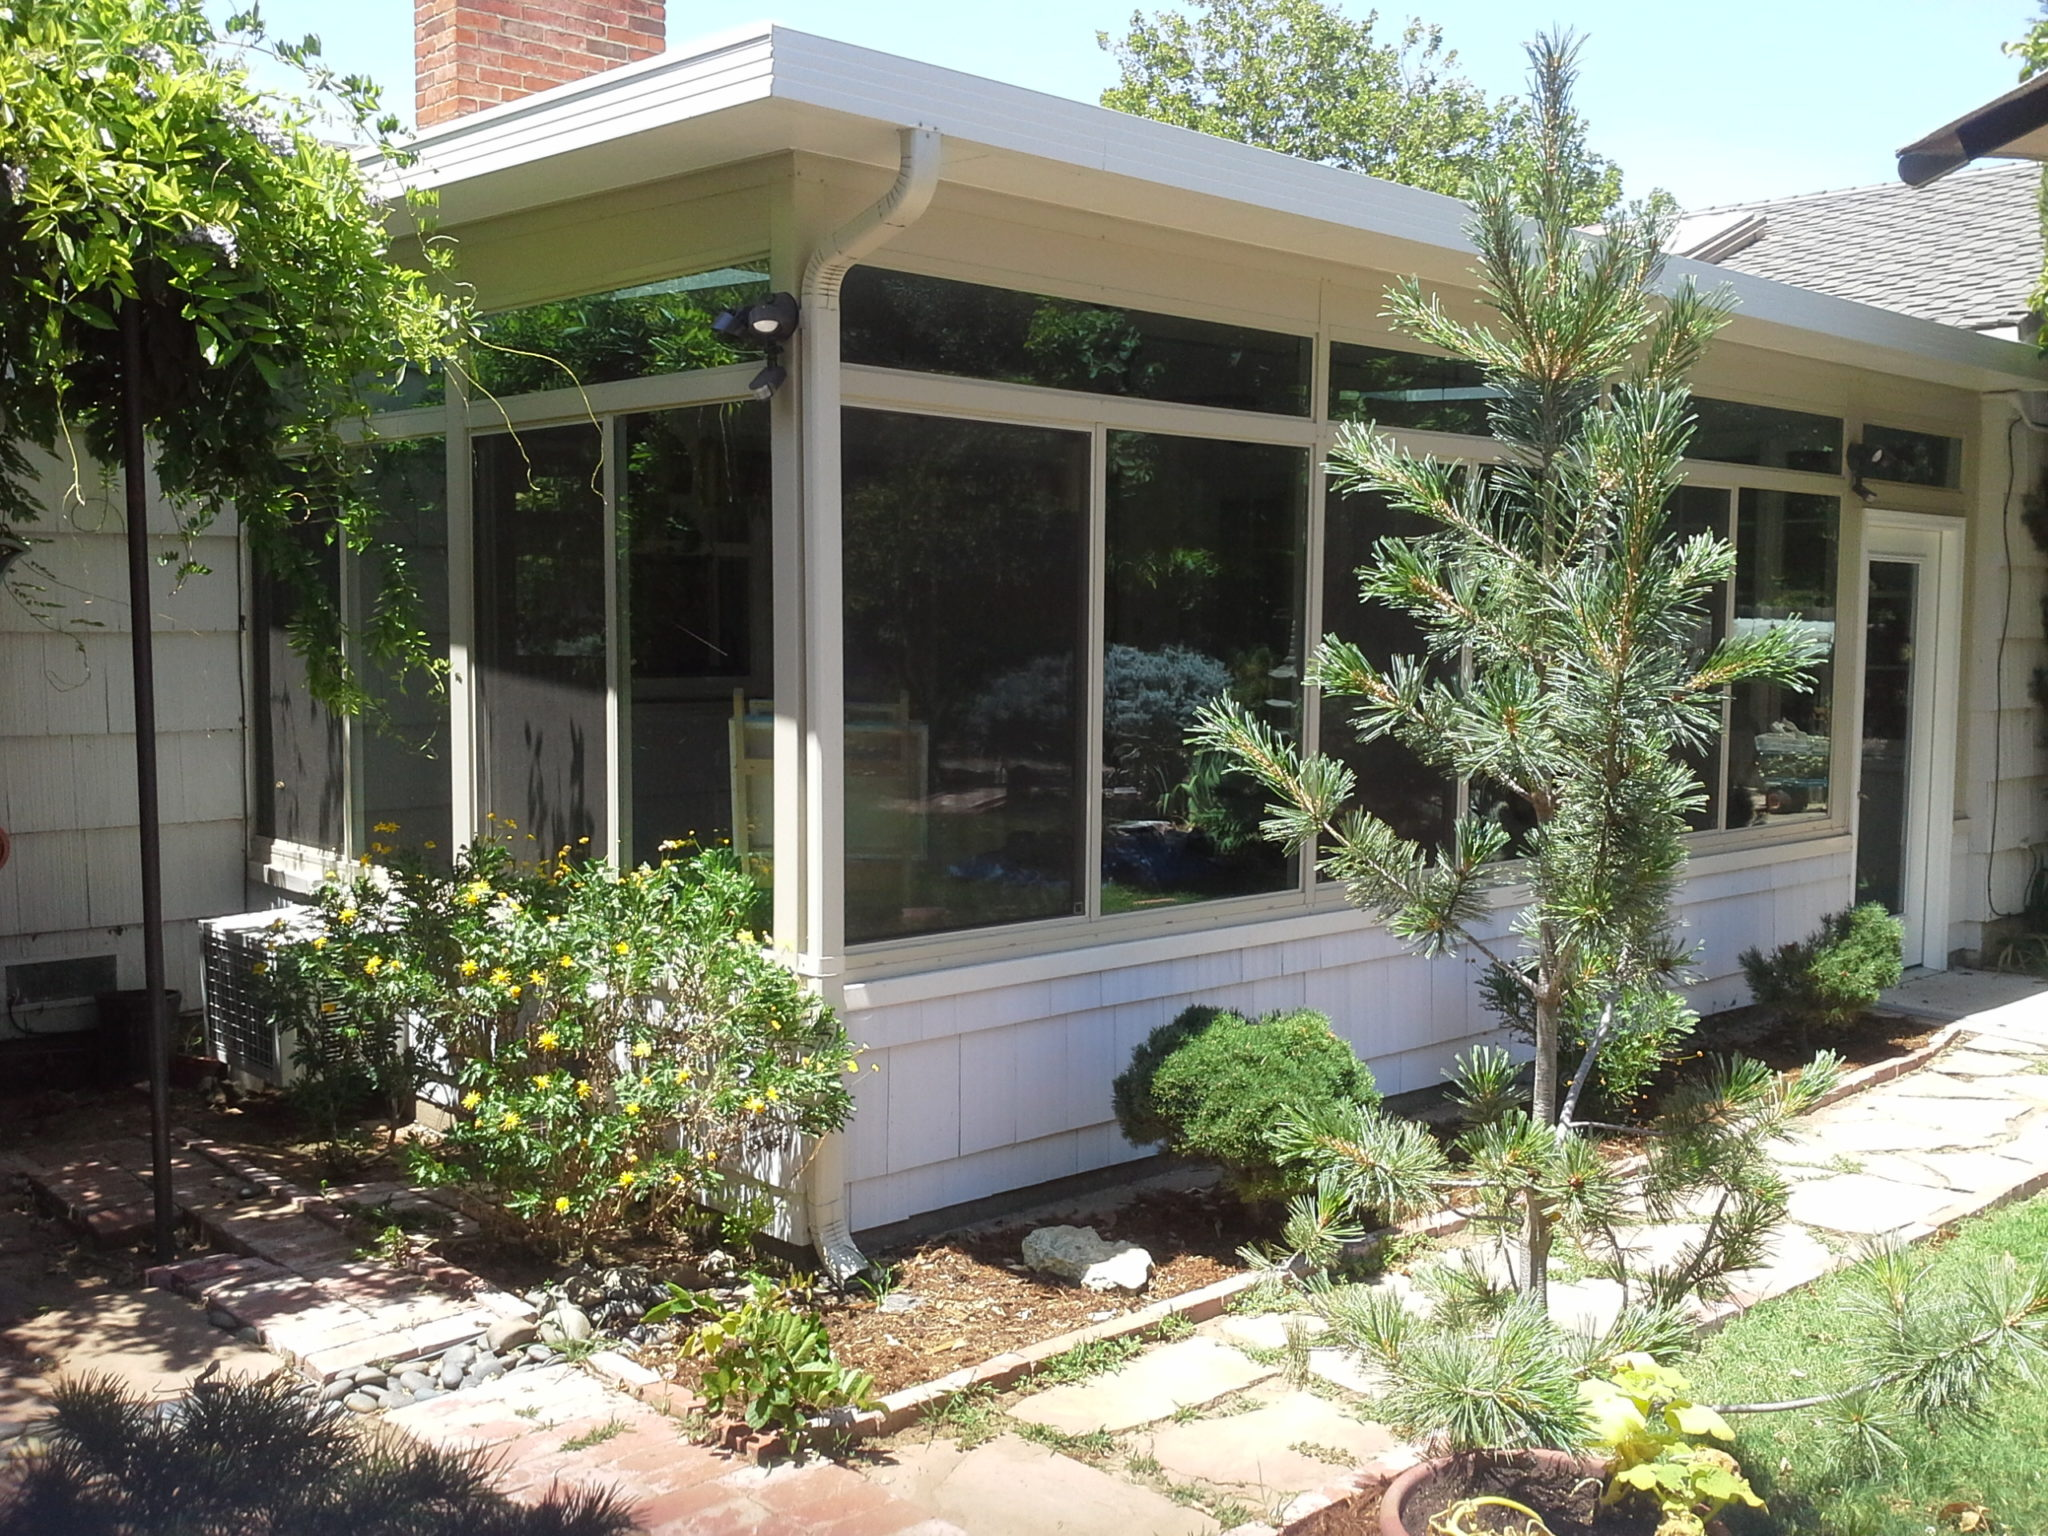 Sunroom living area addition petkus brothers for Two story sunroom additions